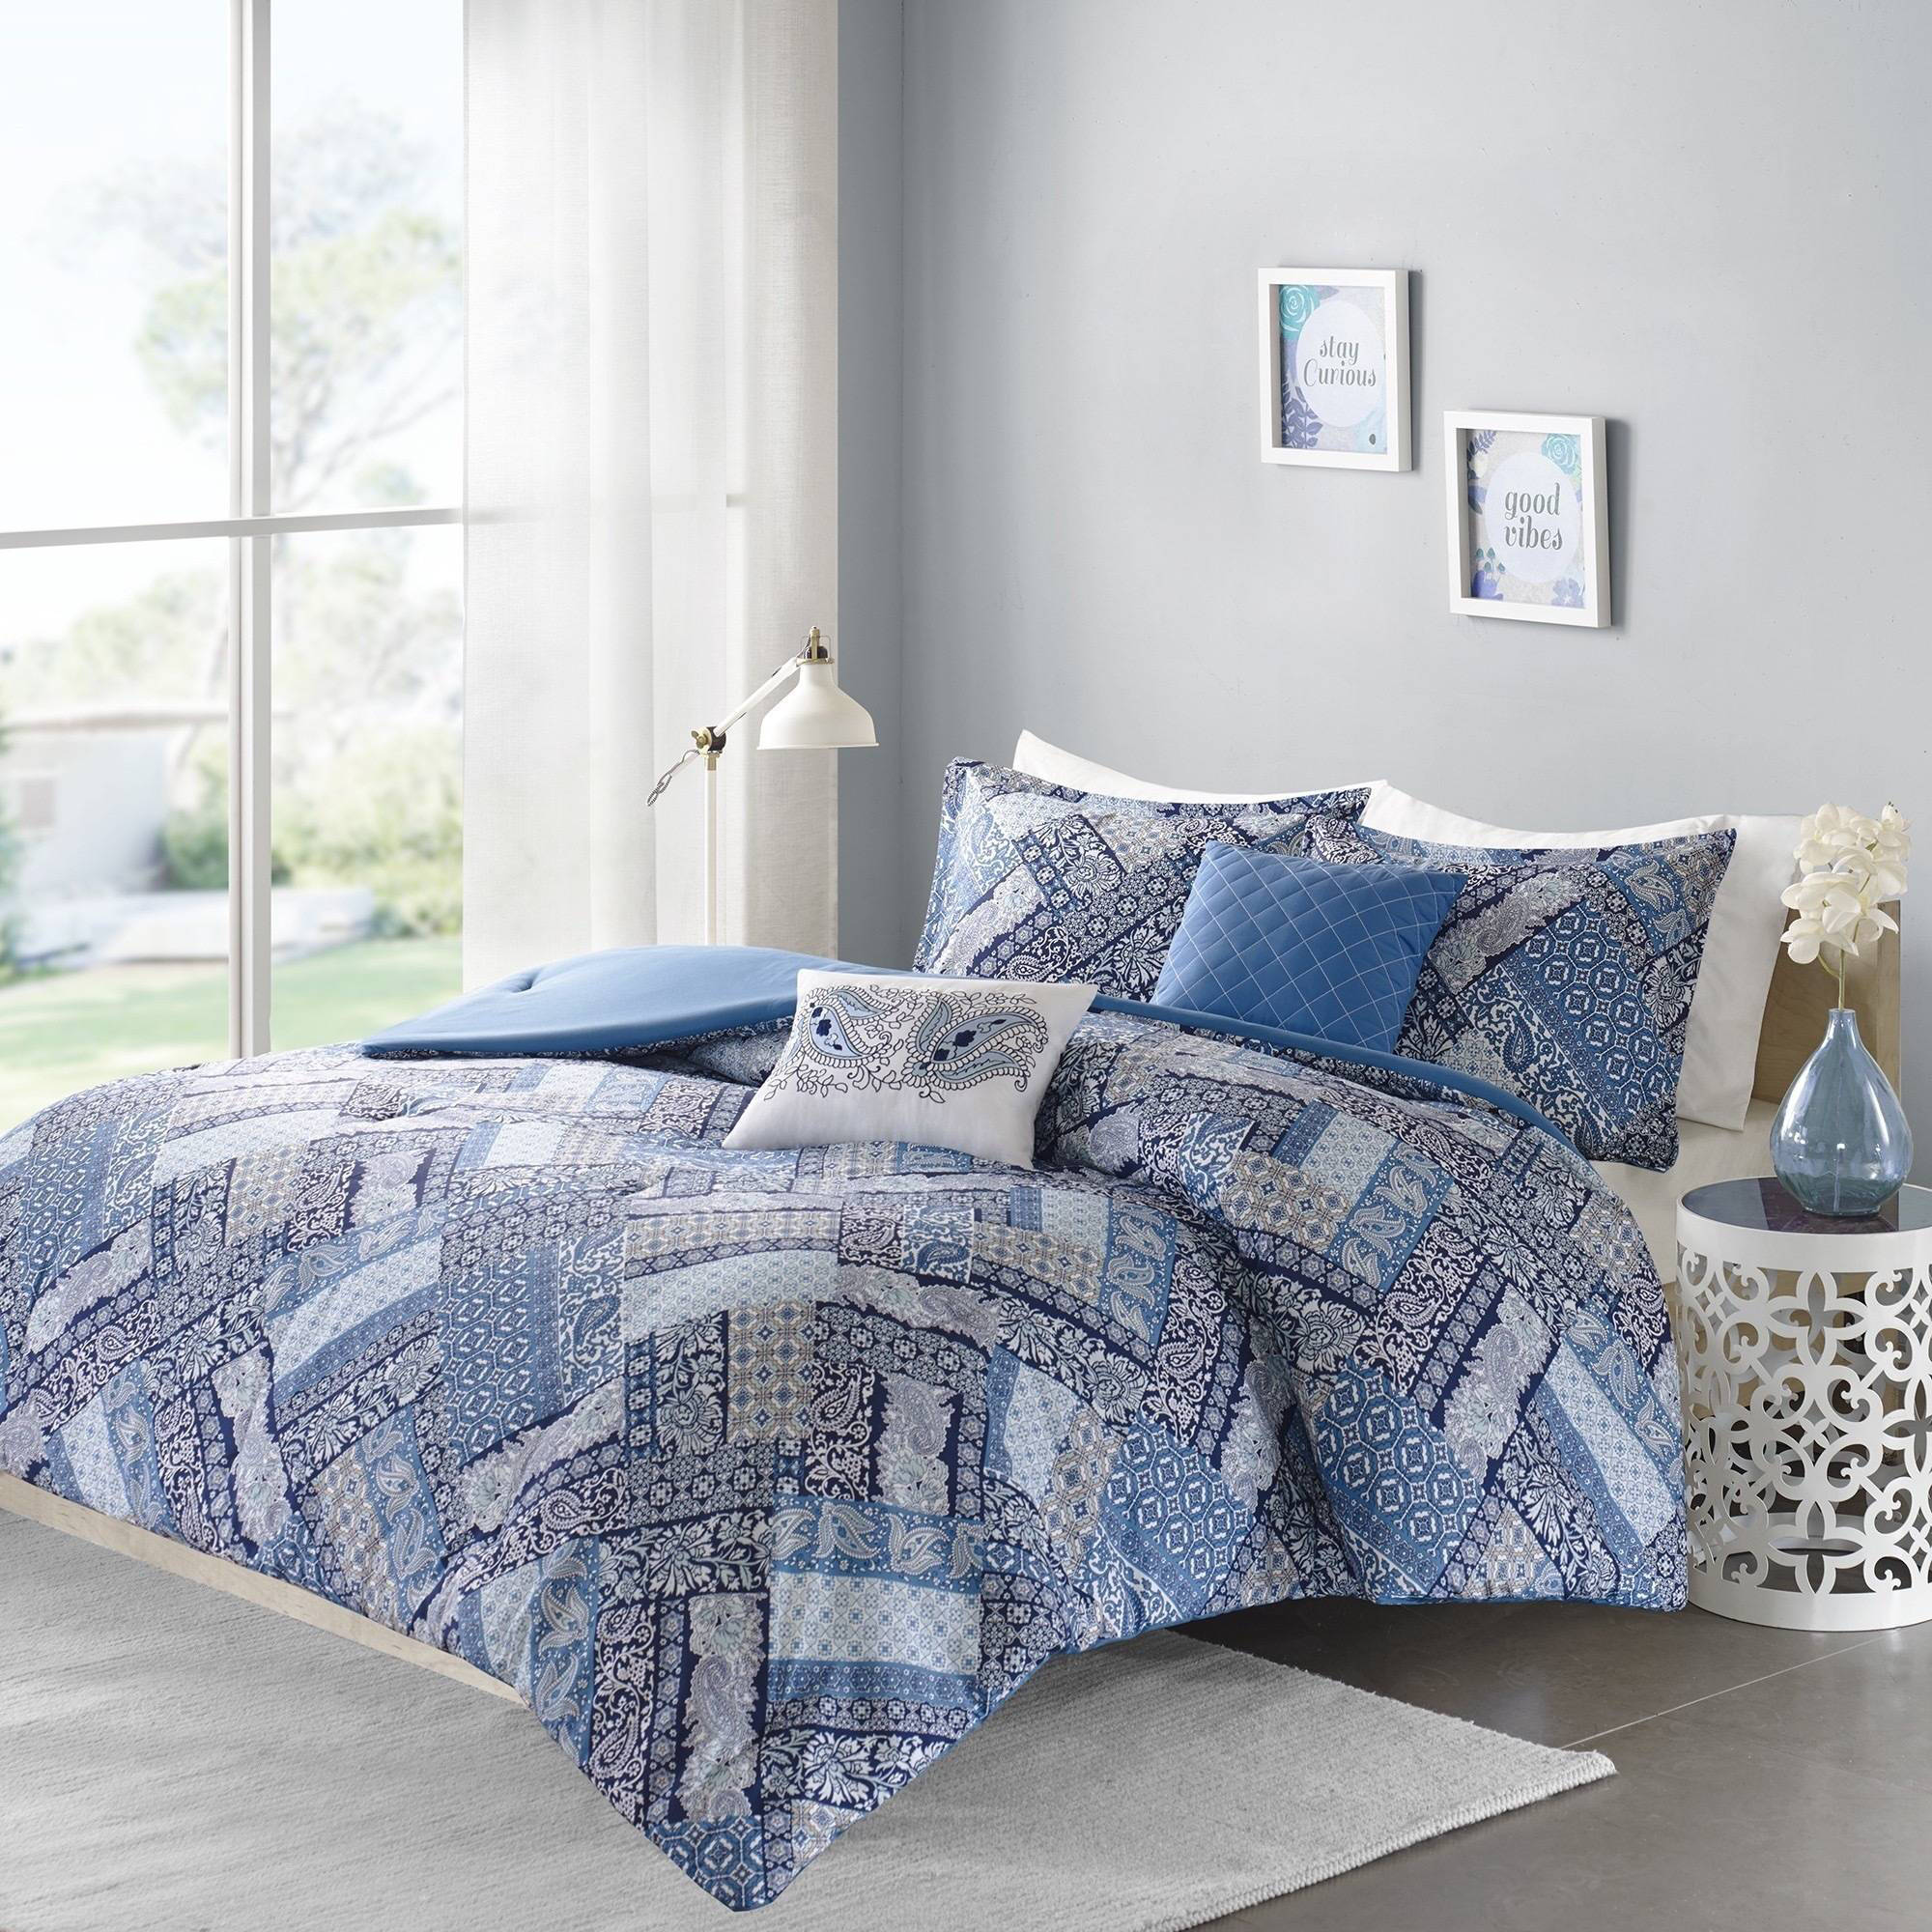 Home Essence Apartment Lainey Bedding Comforter Set